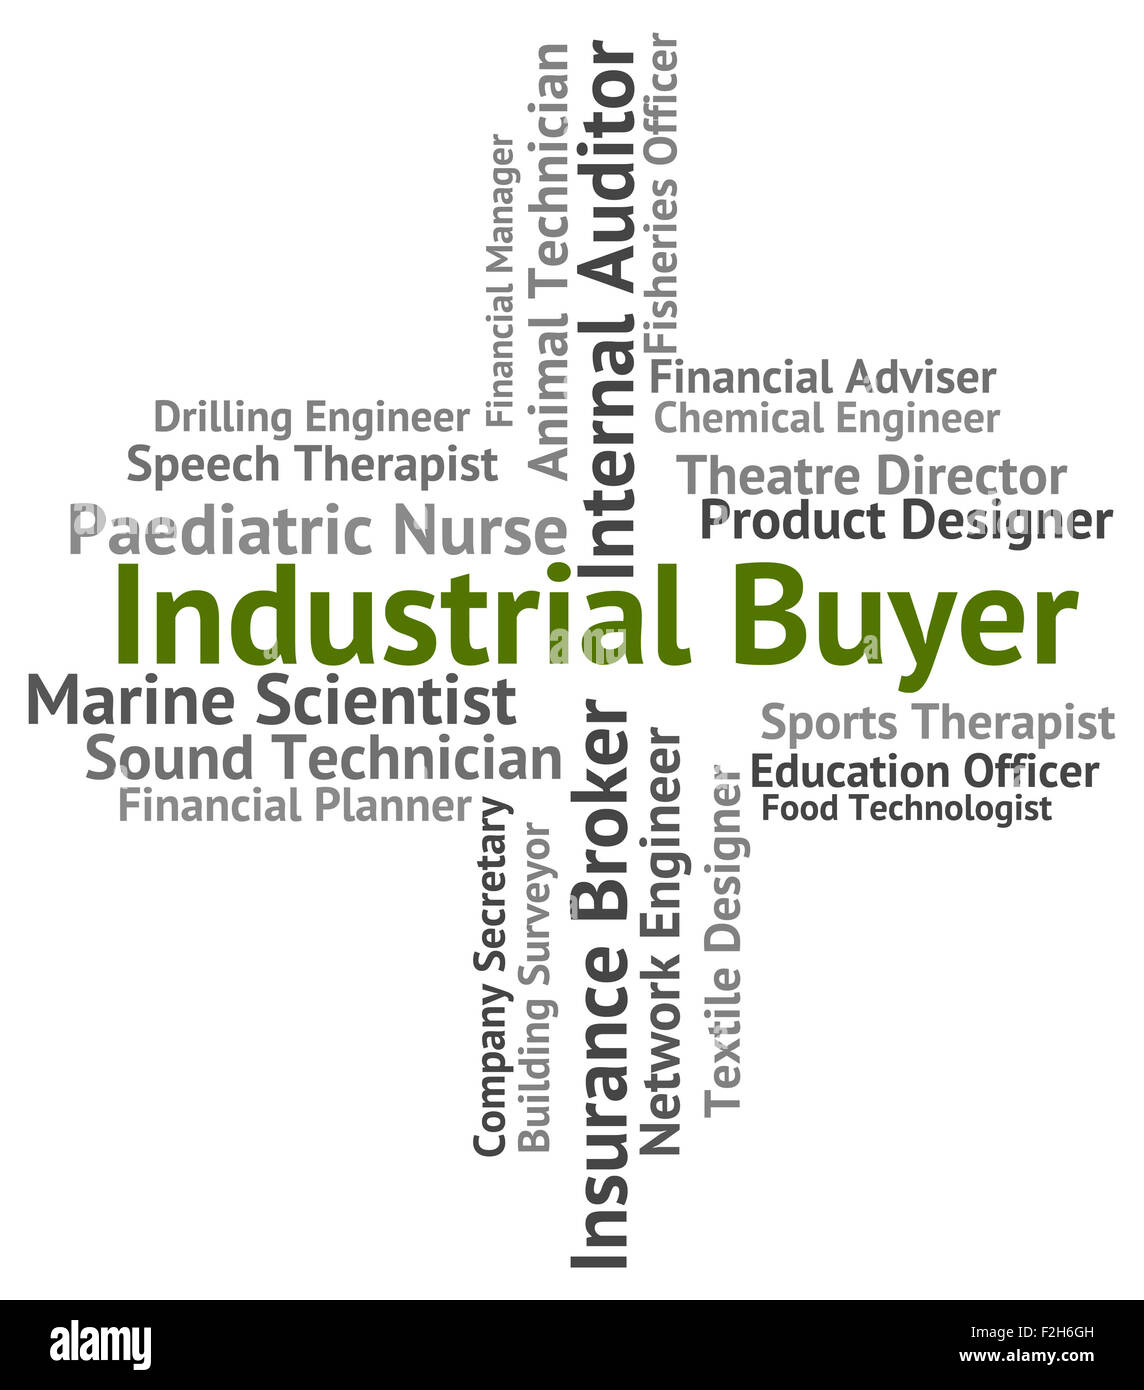 Industrial Buyer Representing Trade Occupation And Employee - Stock Image